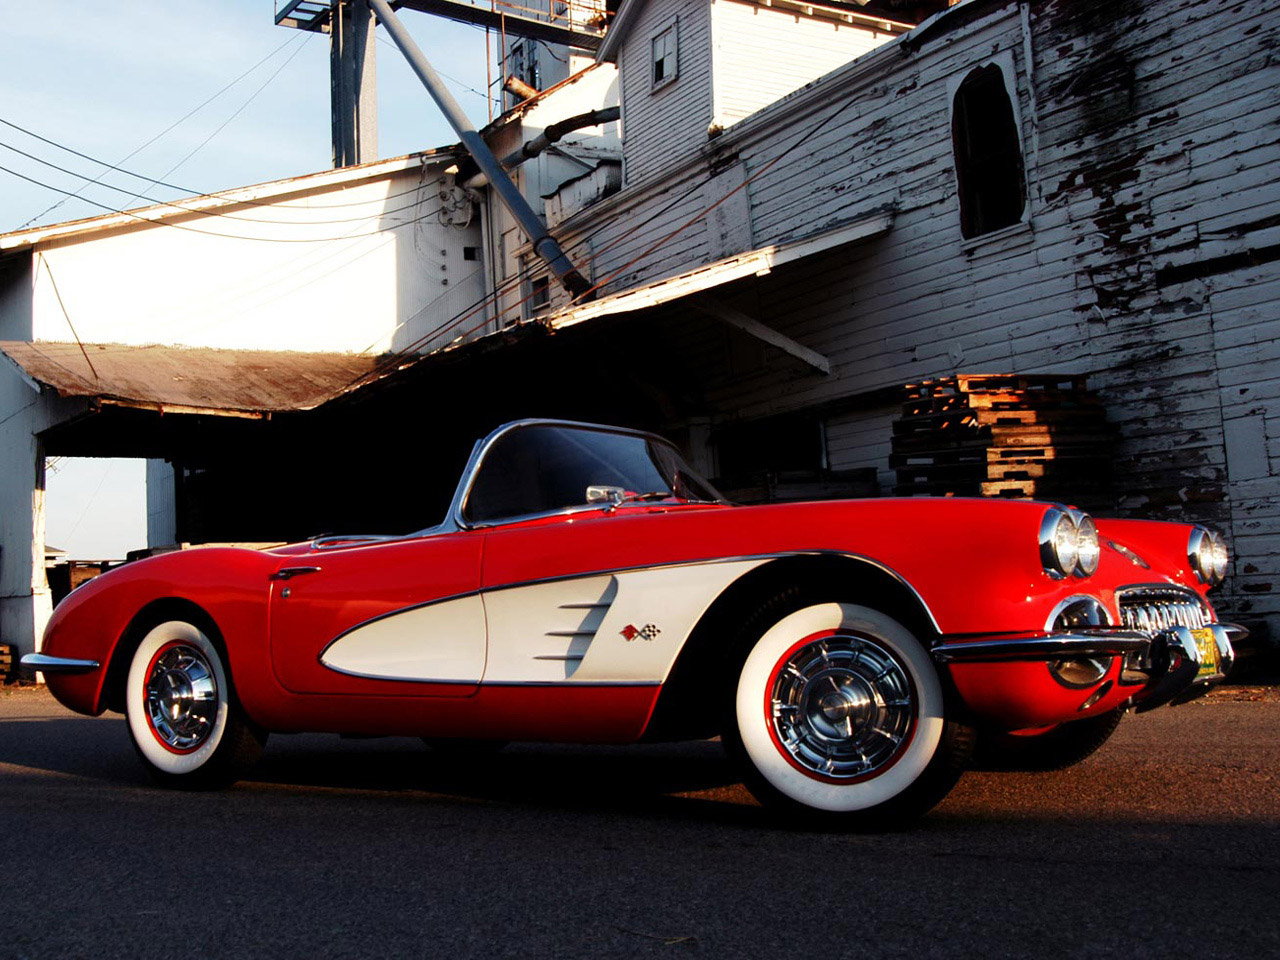 Chevrolet corvette 1959 photo - 3